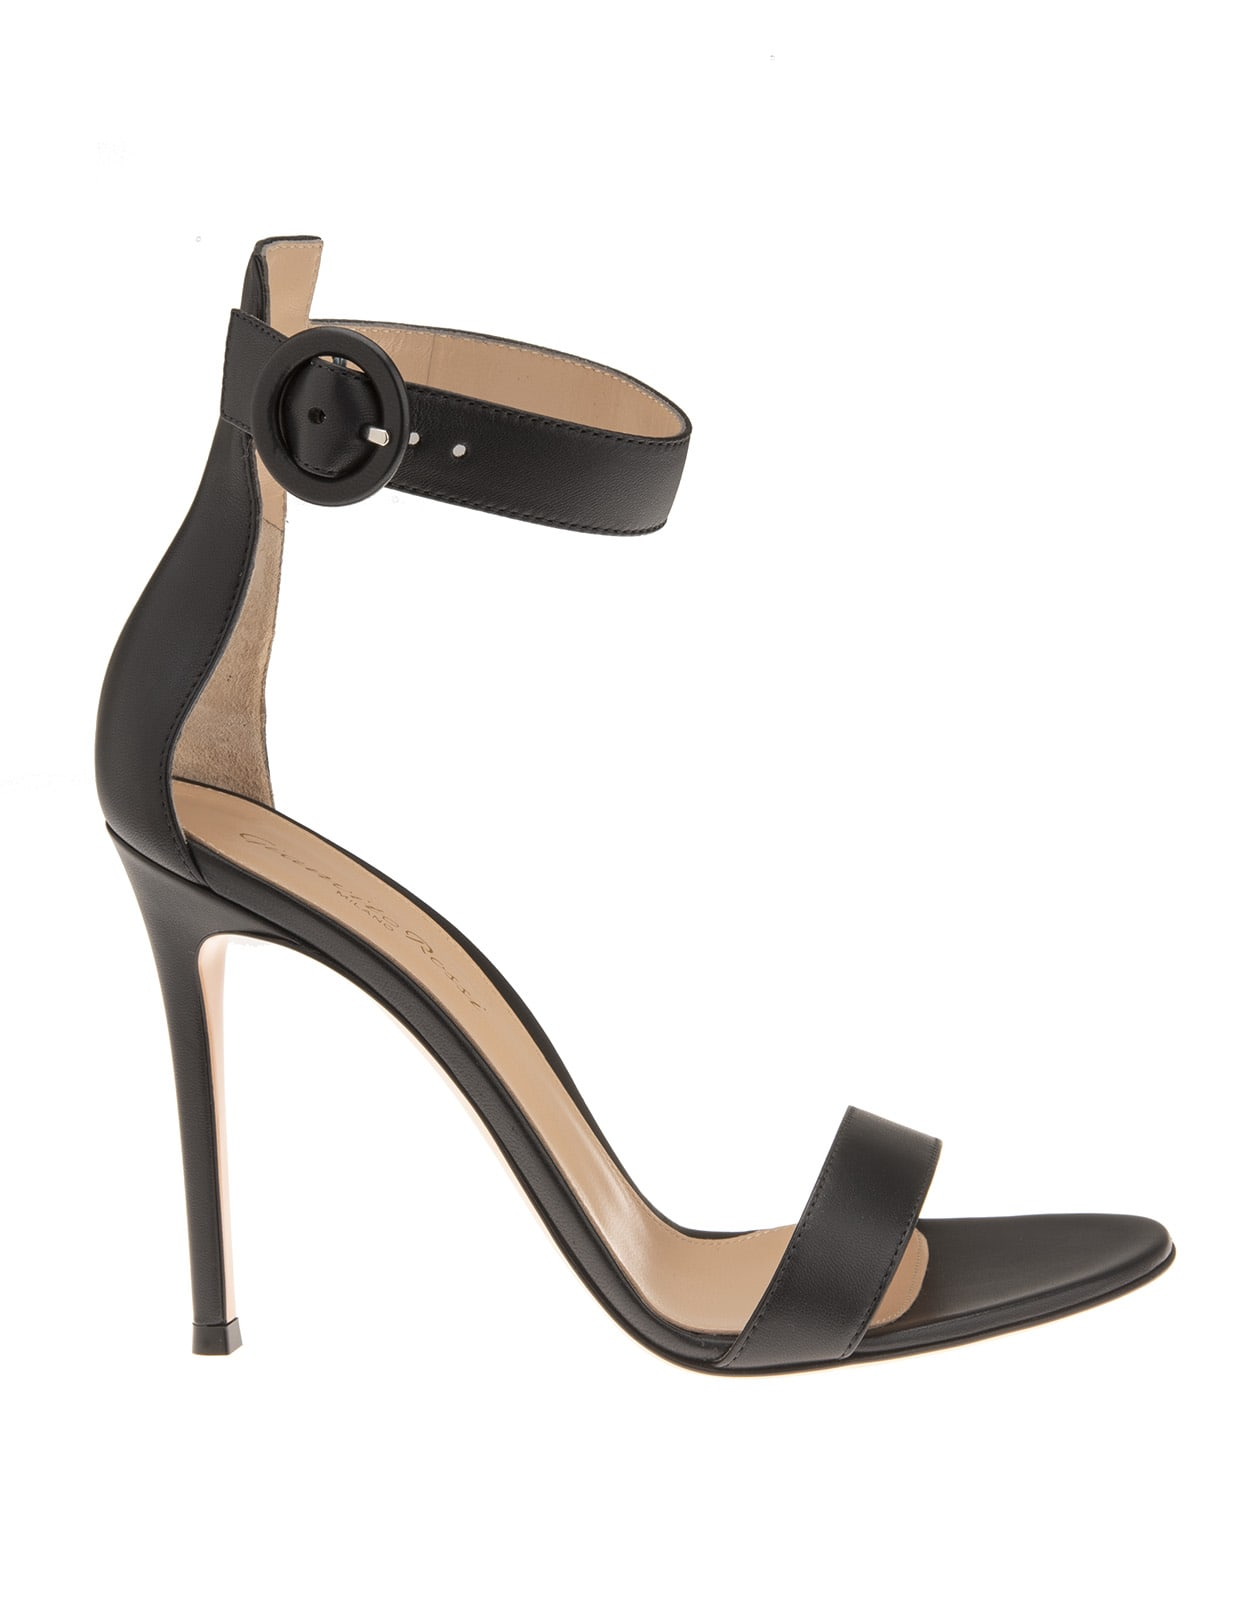 105mm Strappy Suede Sandals